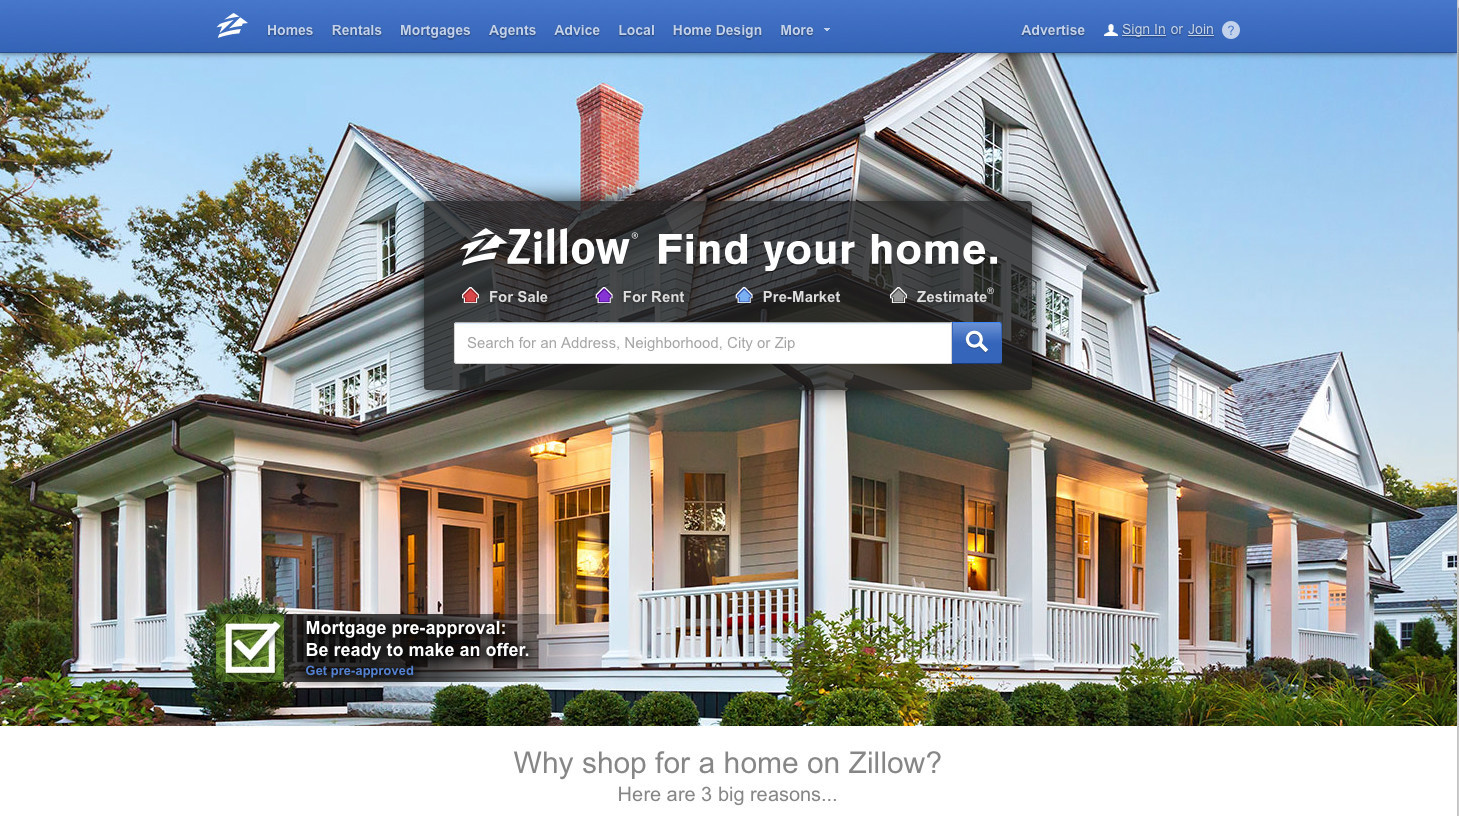 Zillow faces legal action over its co-marketing program